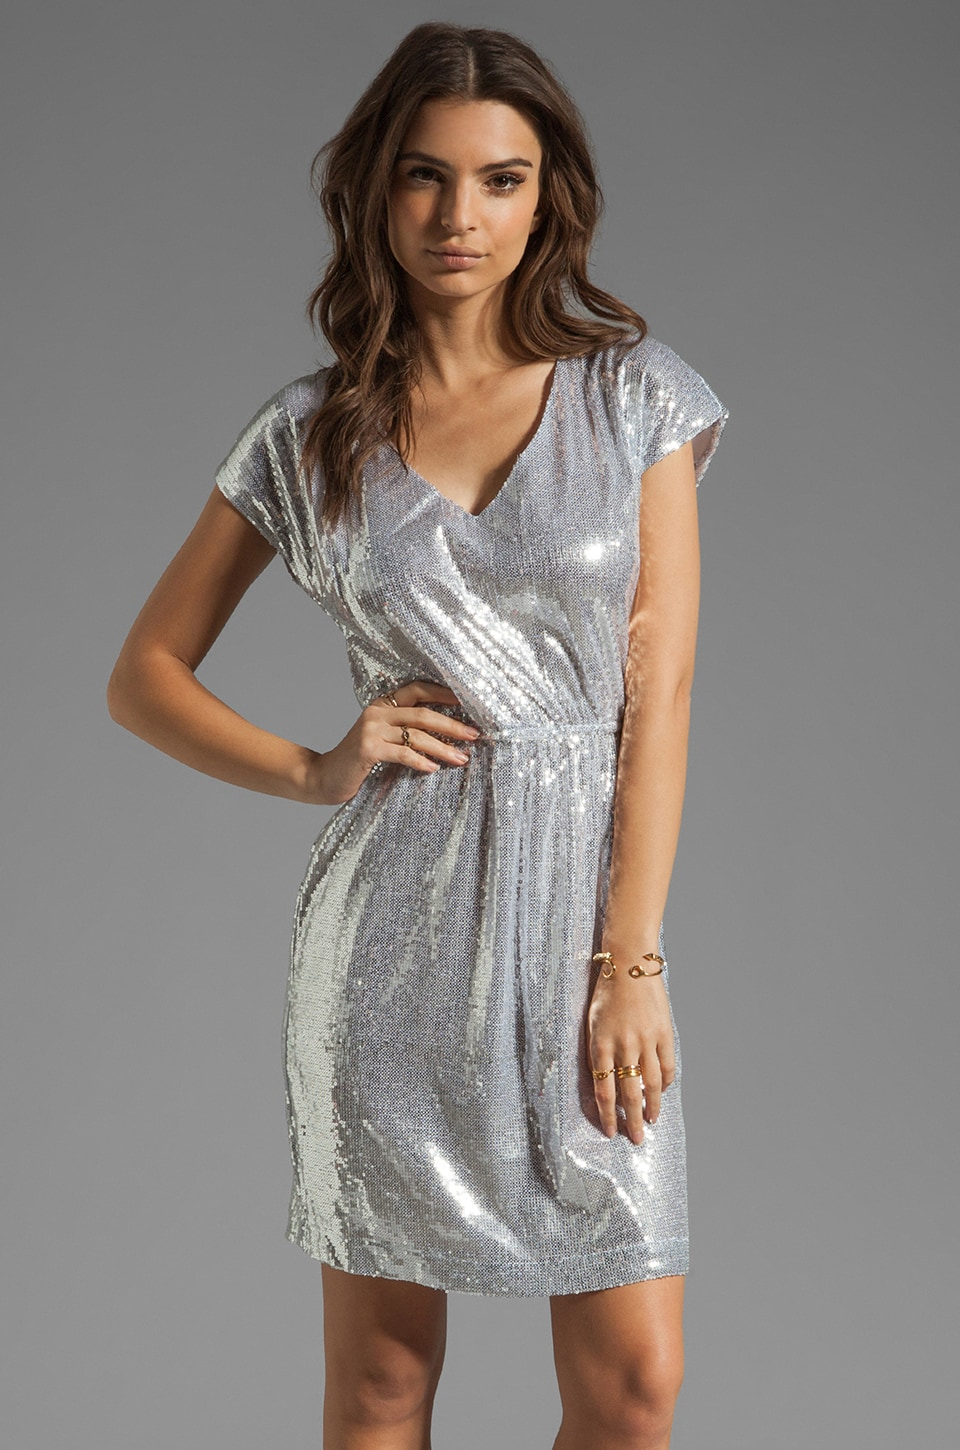 BB Dakota Luca Sequin Sheath Dress in Silver